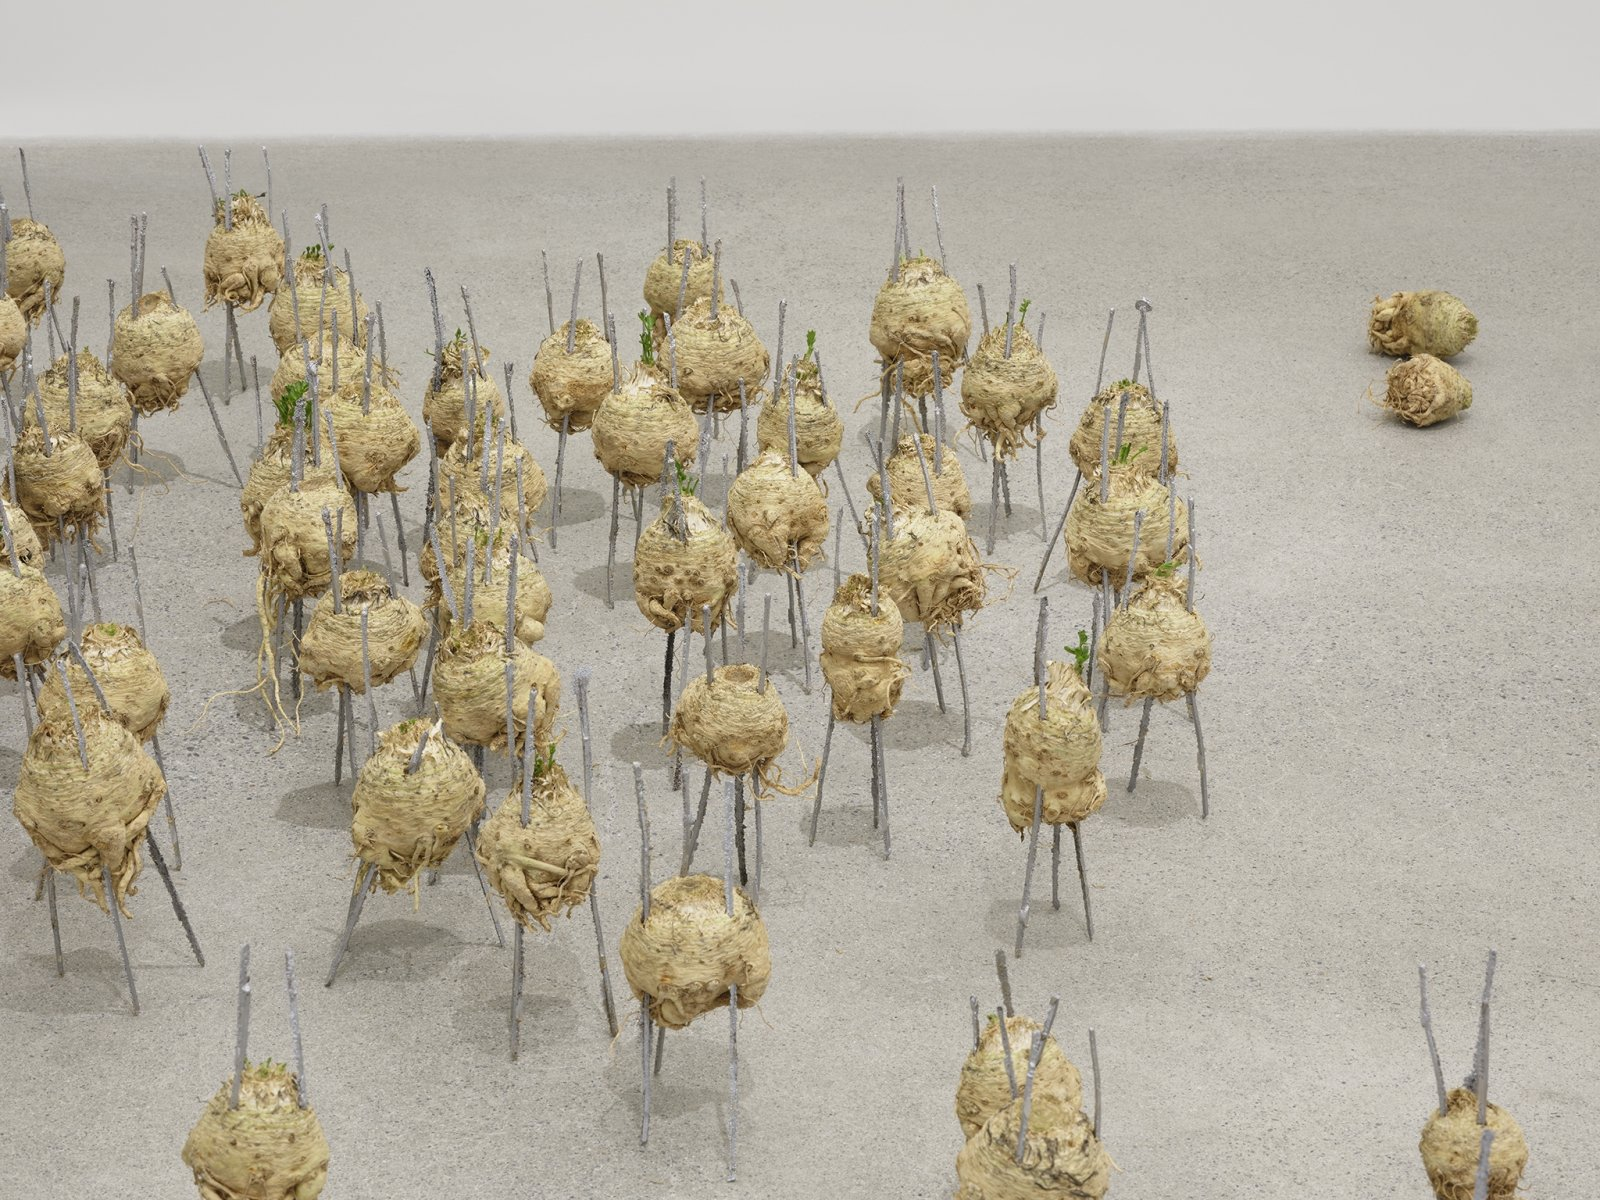 Rochelle Goldberg, Cosmic Footing (detail), 2019, celeriac, ginger, cast aluminum matches, cast bronze matches, installation dimensions variable by Rochelle Goldberg